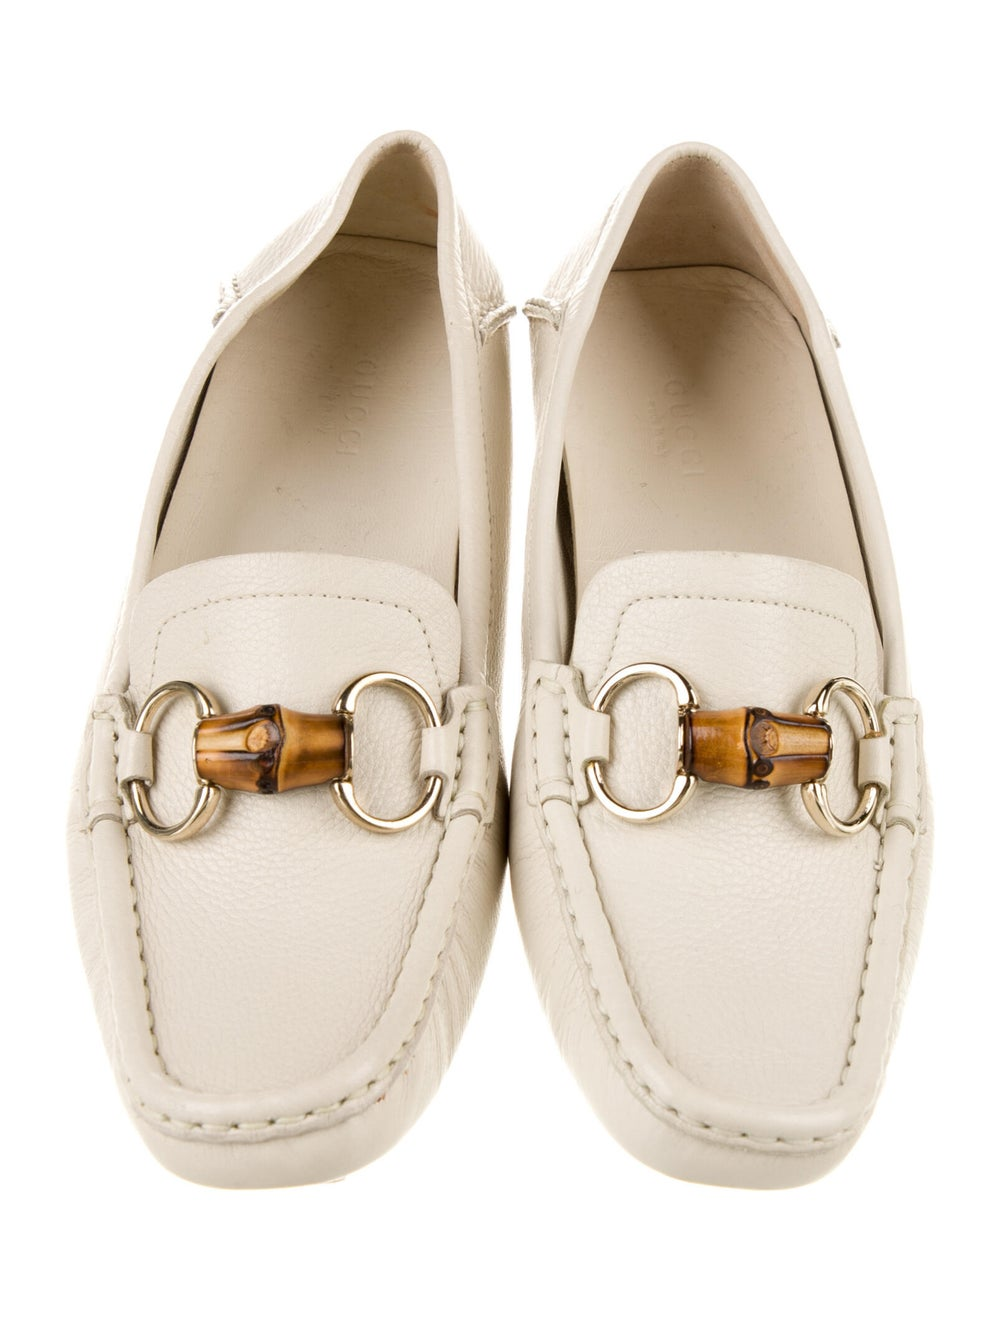 Gucci Horsebit Accent Leather Loafers White - image 3